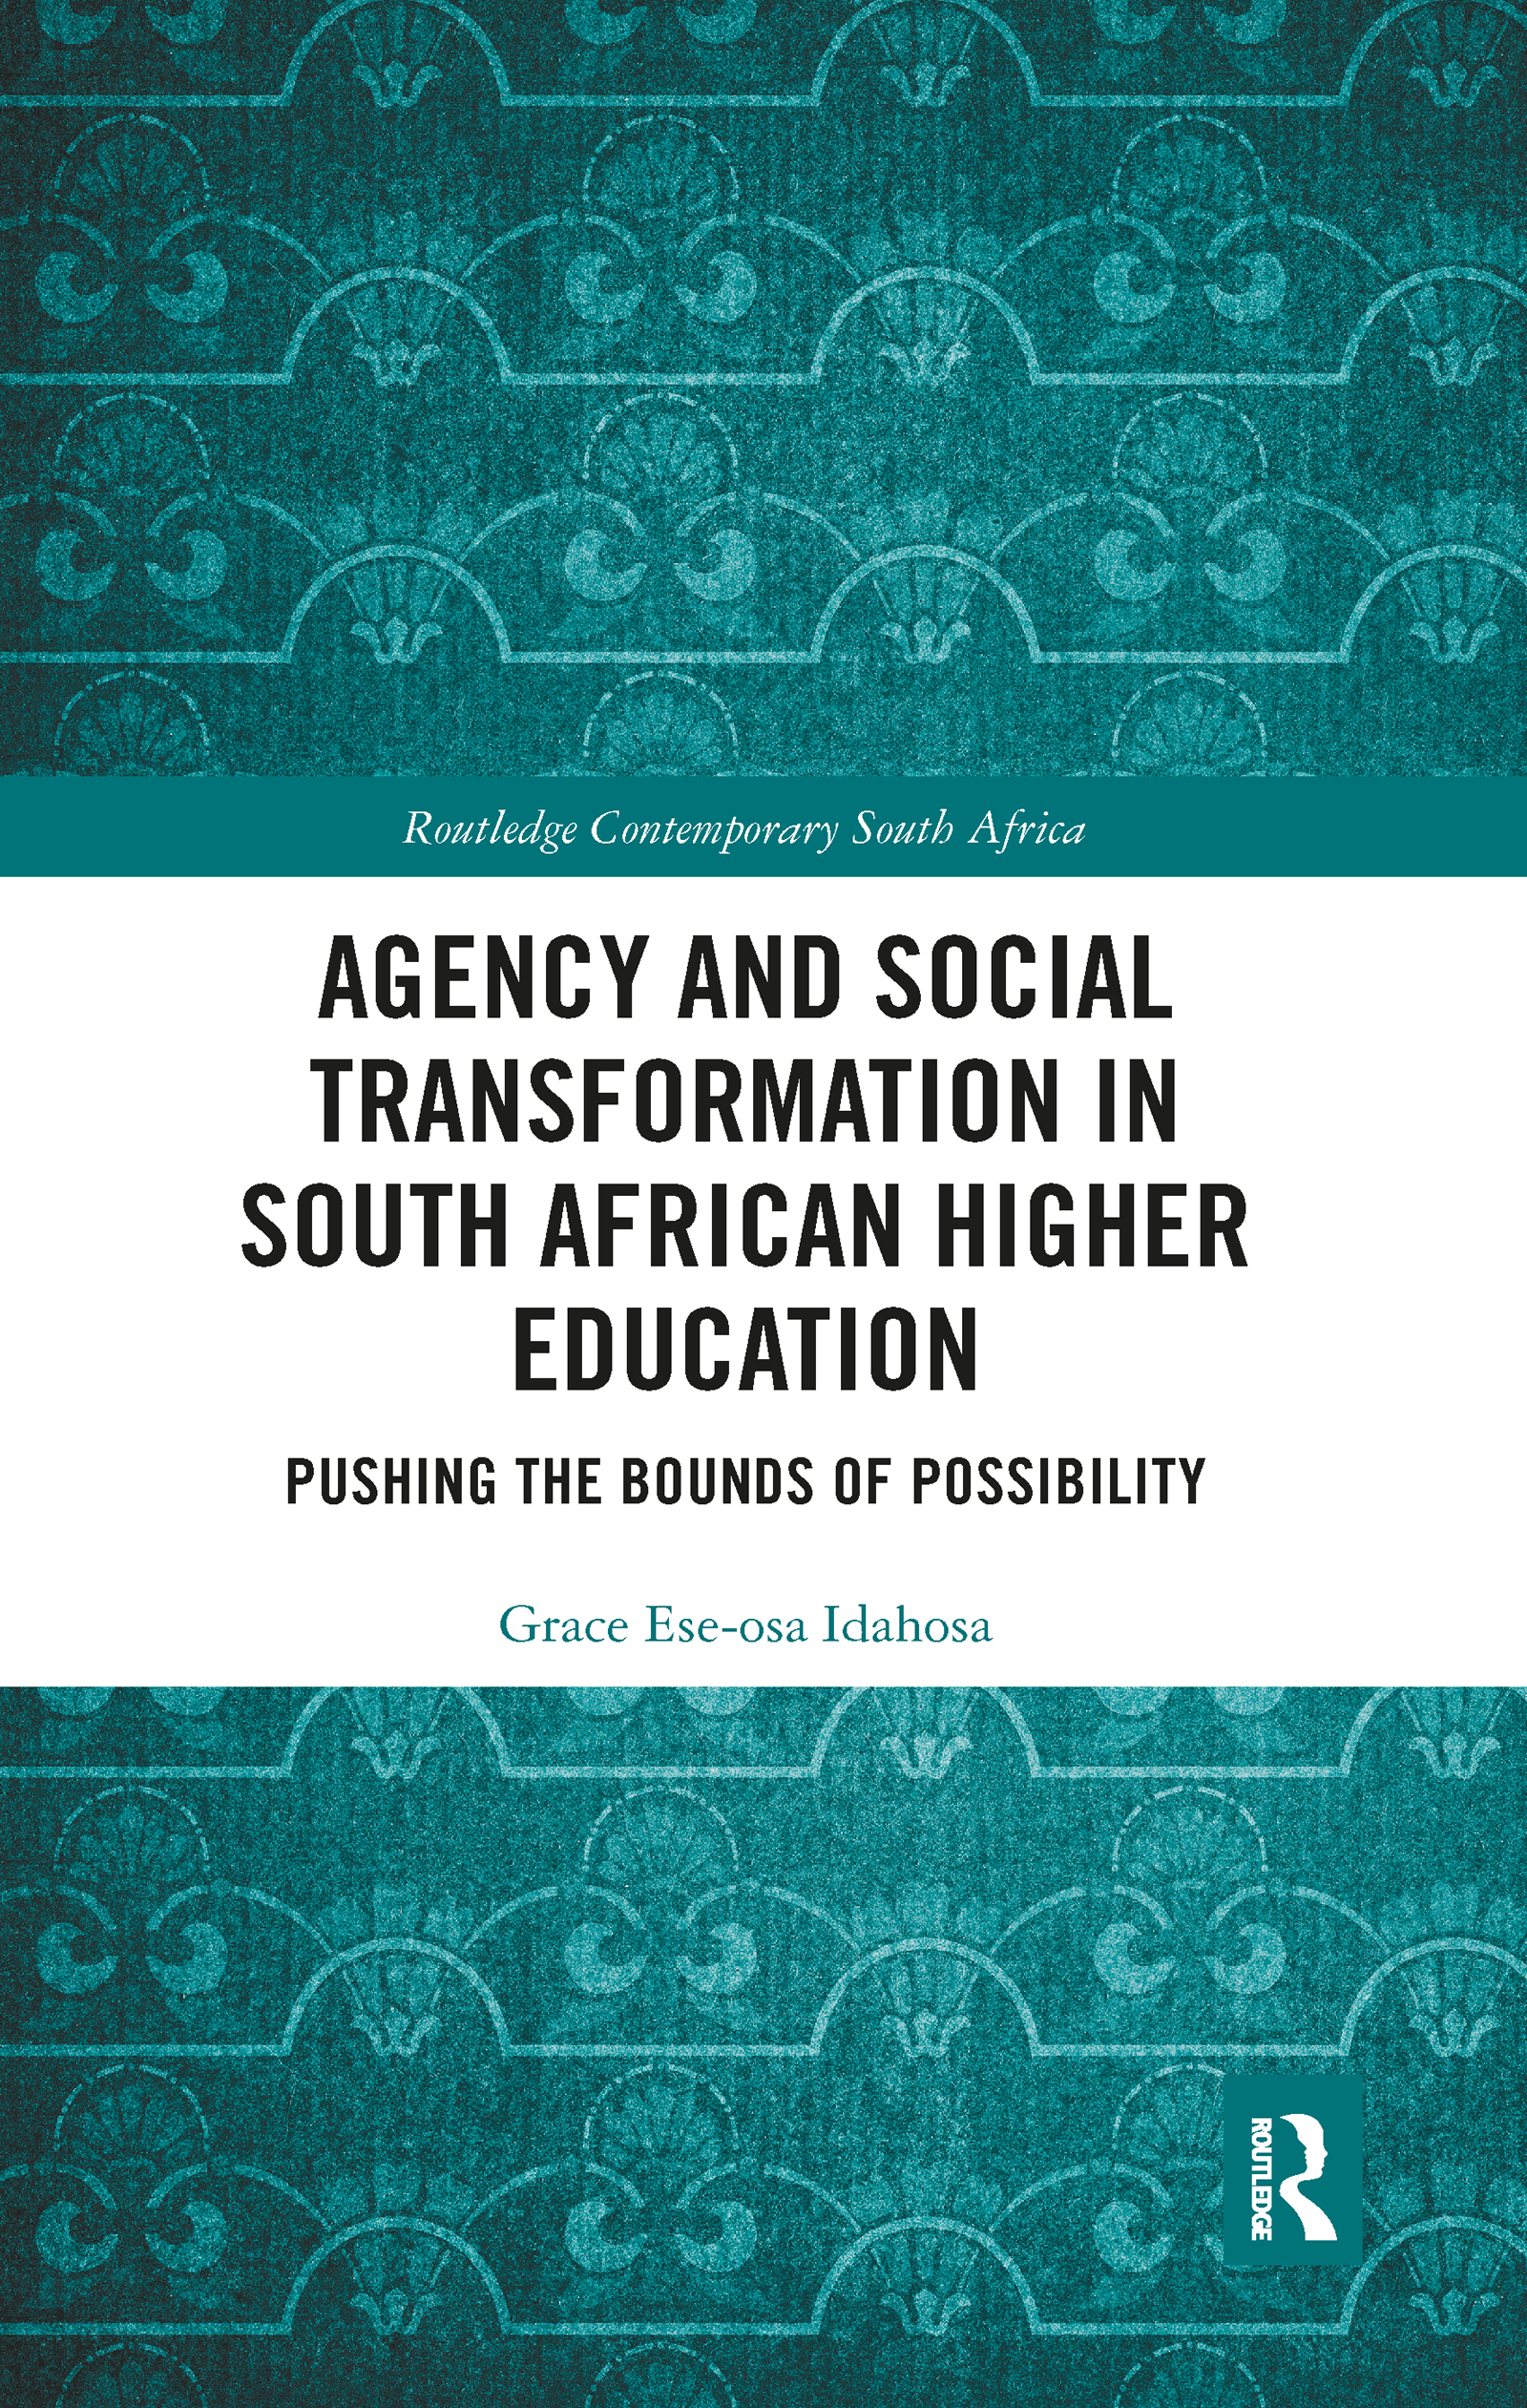 Agency and Social Transformation in South African Higher Education